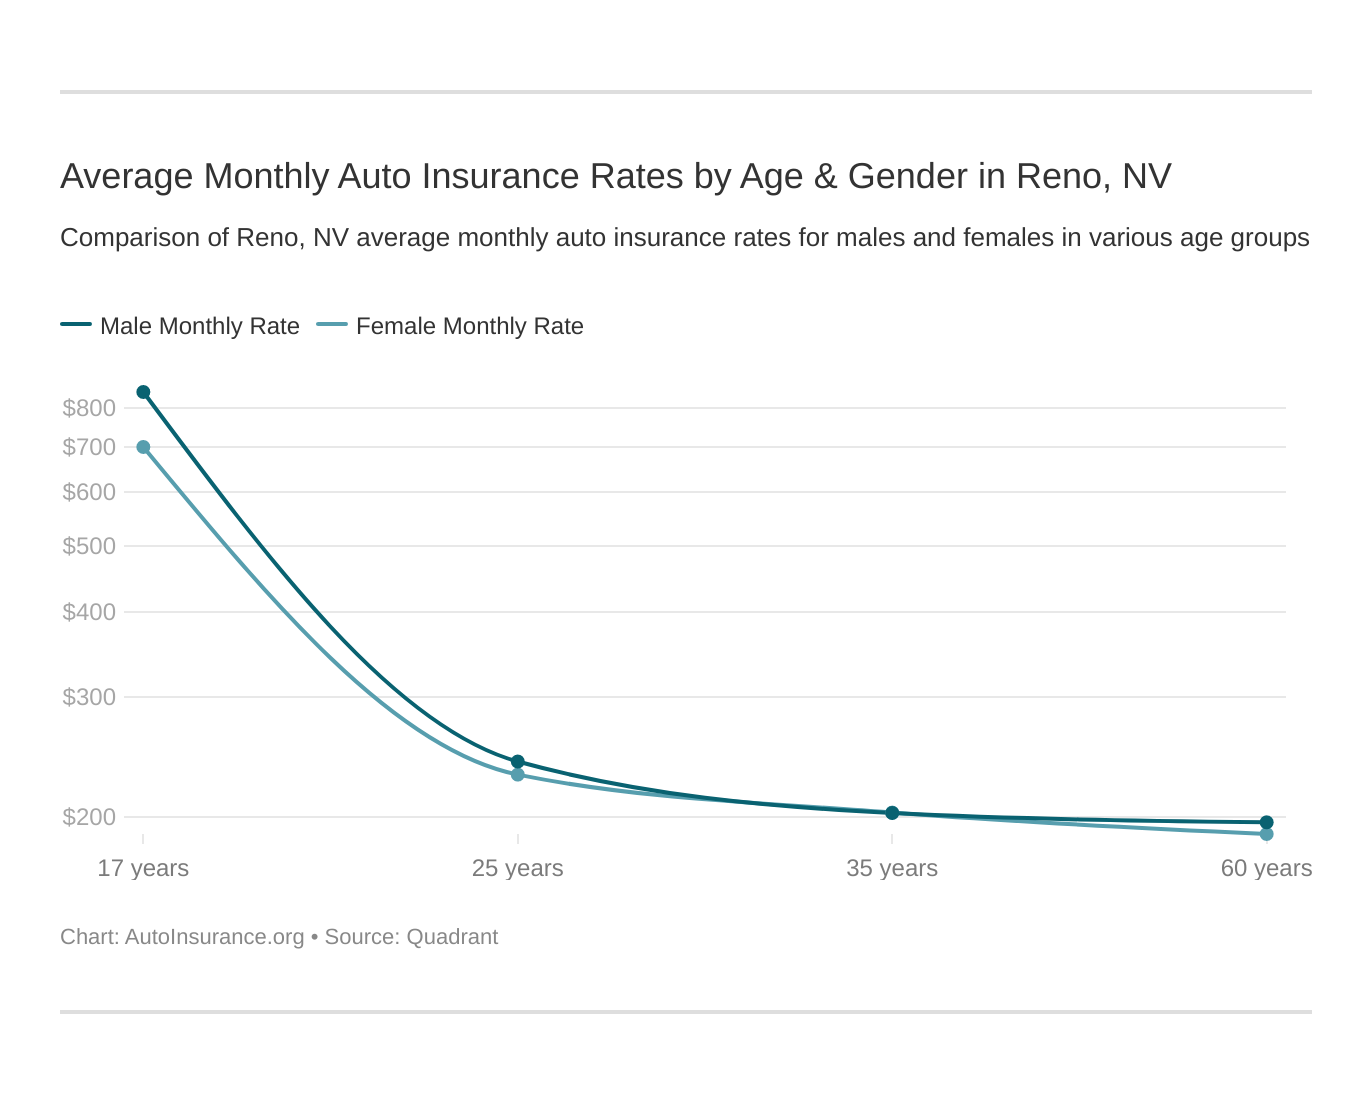 Average Monthly Auto Insurance Rates by Age & Gender in Reno, NV